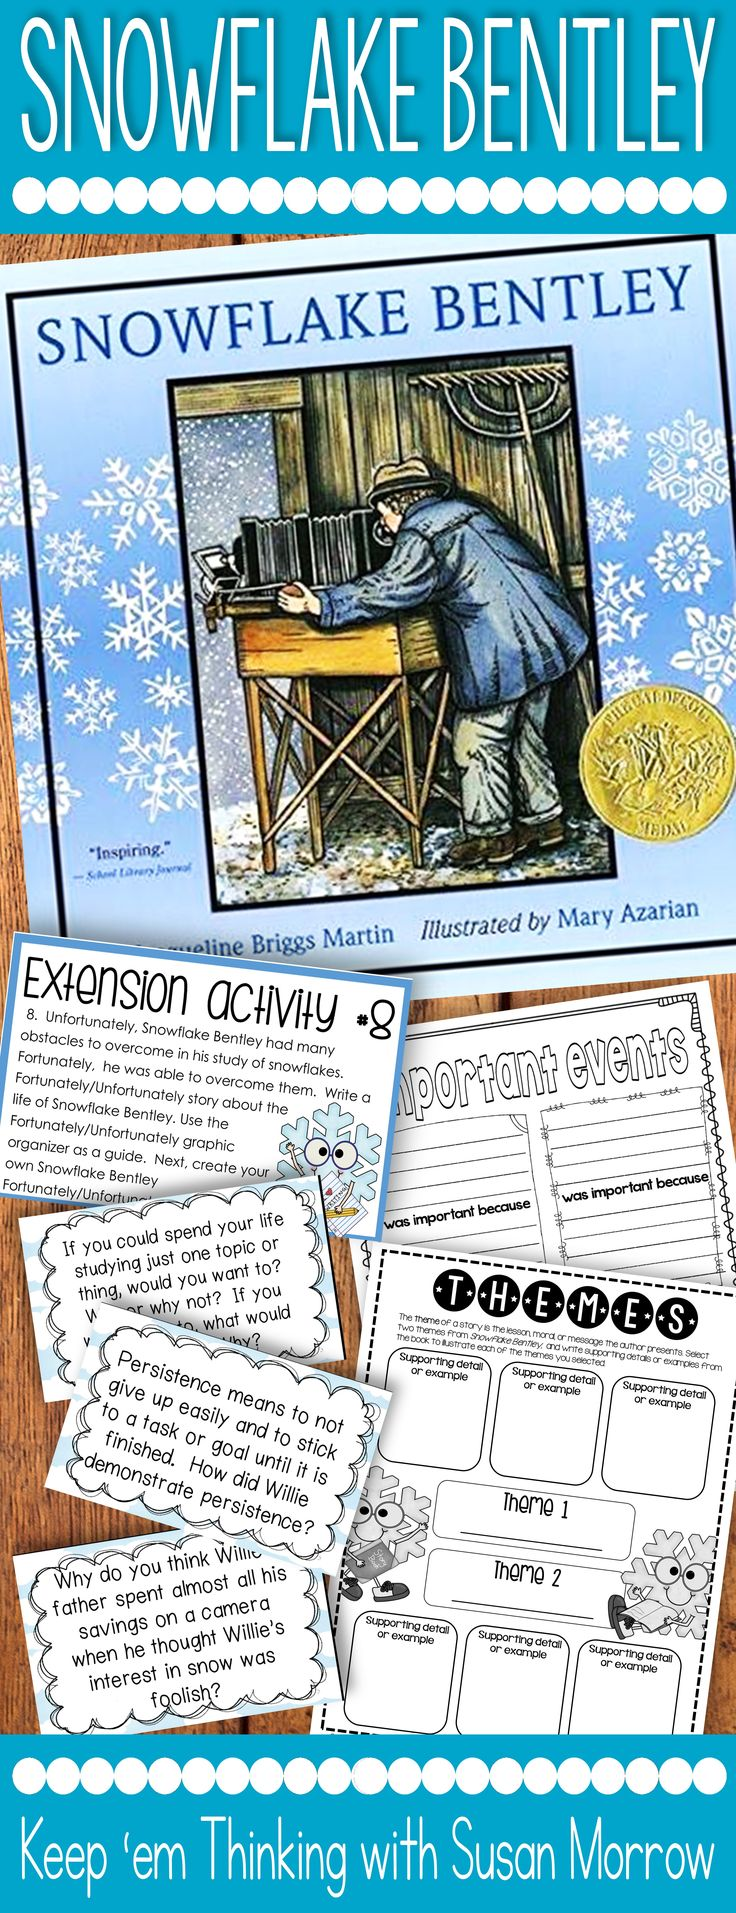 Snowflake Bentley Literature Unit:   my favorite winter picture book and read aloud for second, third, fourth, fifth grade & homeschool students is filled with rich literacy activities & lessons to foster critical thinking skills. Respond to literature by identifying character traits & story theme, summarizing, vocabulary review. Deep comprehension questions & extension activities for high achievers & early finishers. {2nd, 3rd, 4th, 5th, balanced literacy, book study}#snowflakebentley Susan Morrow